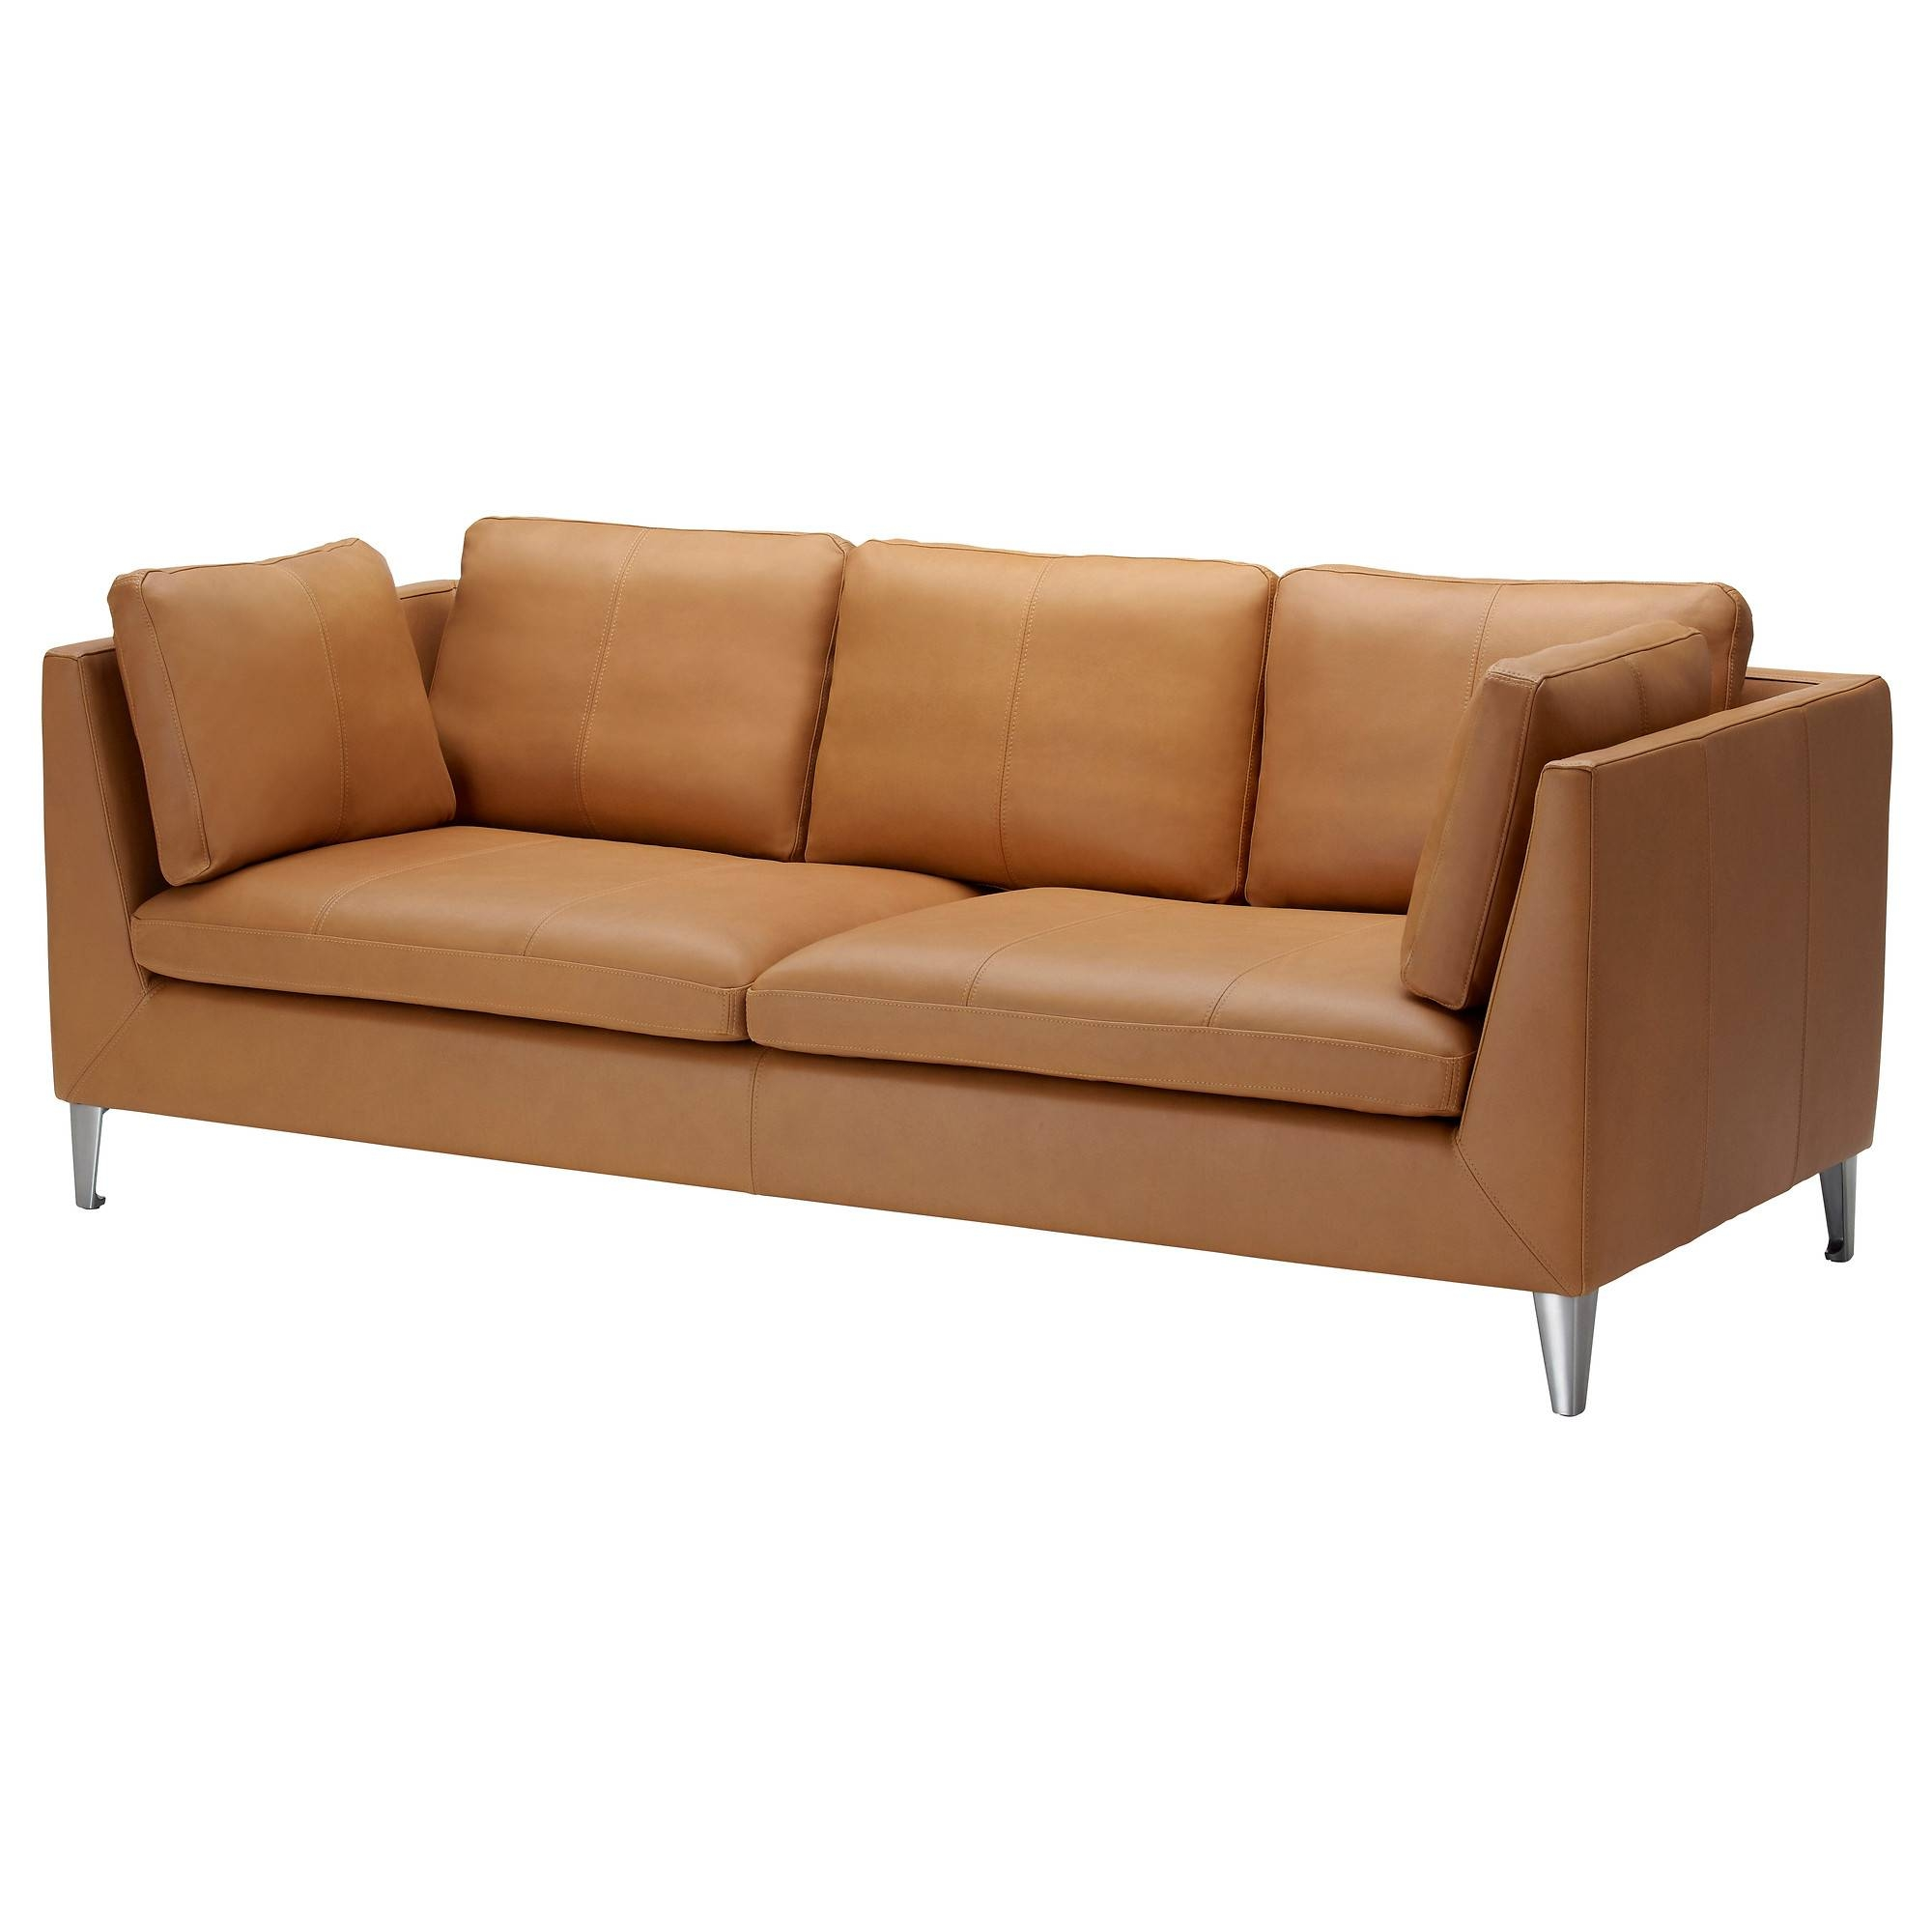 Leather & Faux Leather Couches, Chairs & Ottomans - Ikea throughout Camel Colored Leather Sofas (Image 9 of 15)